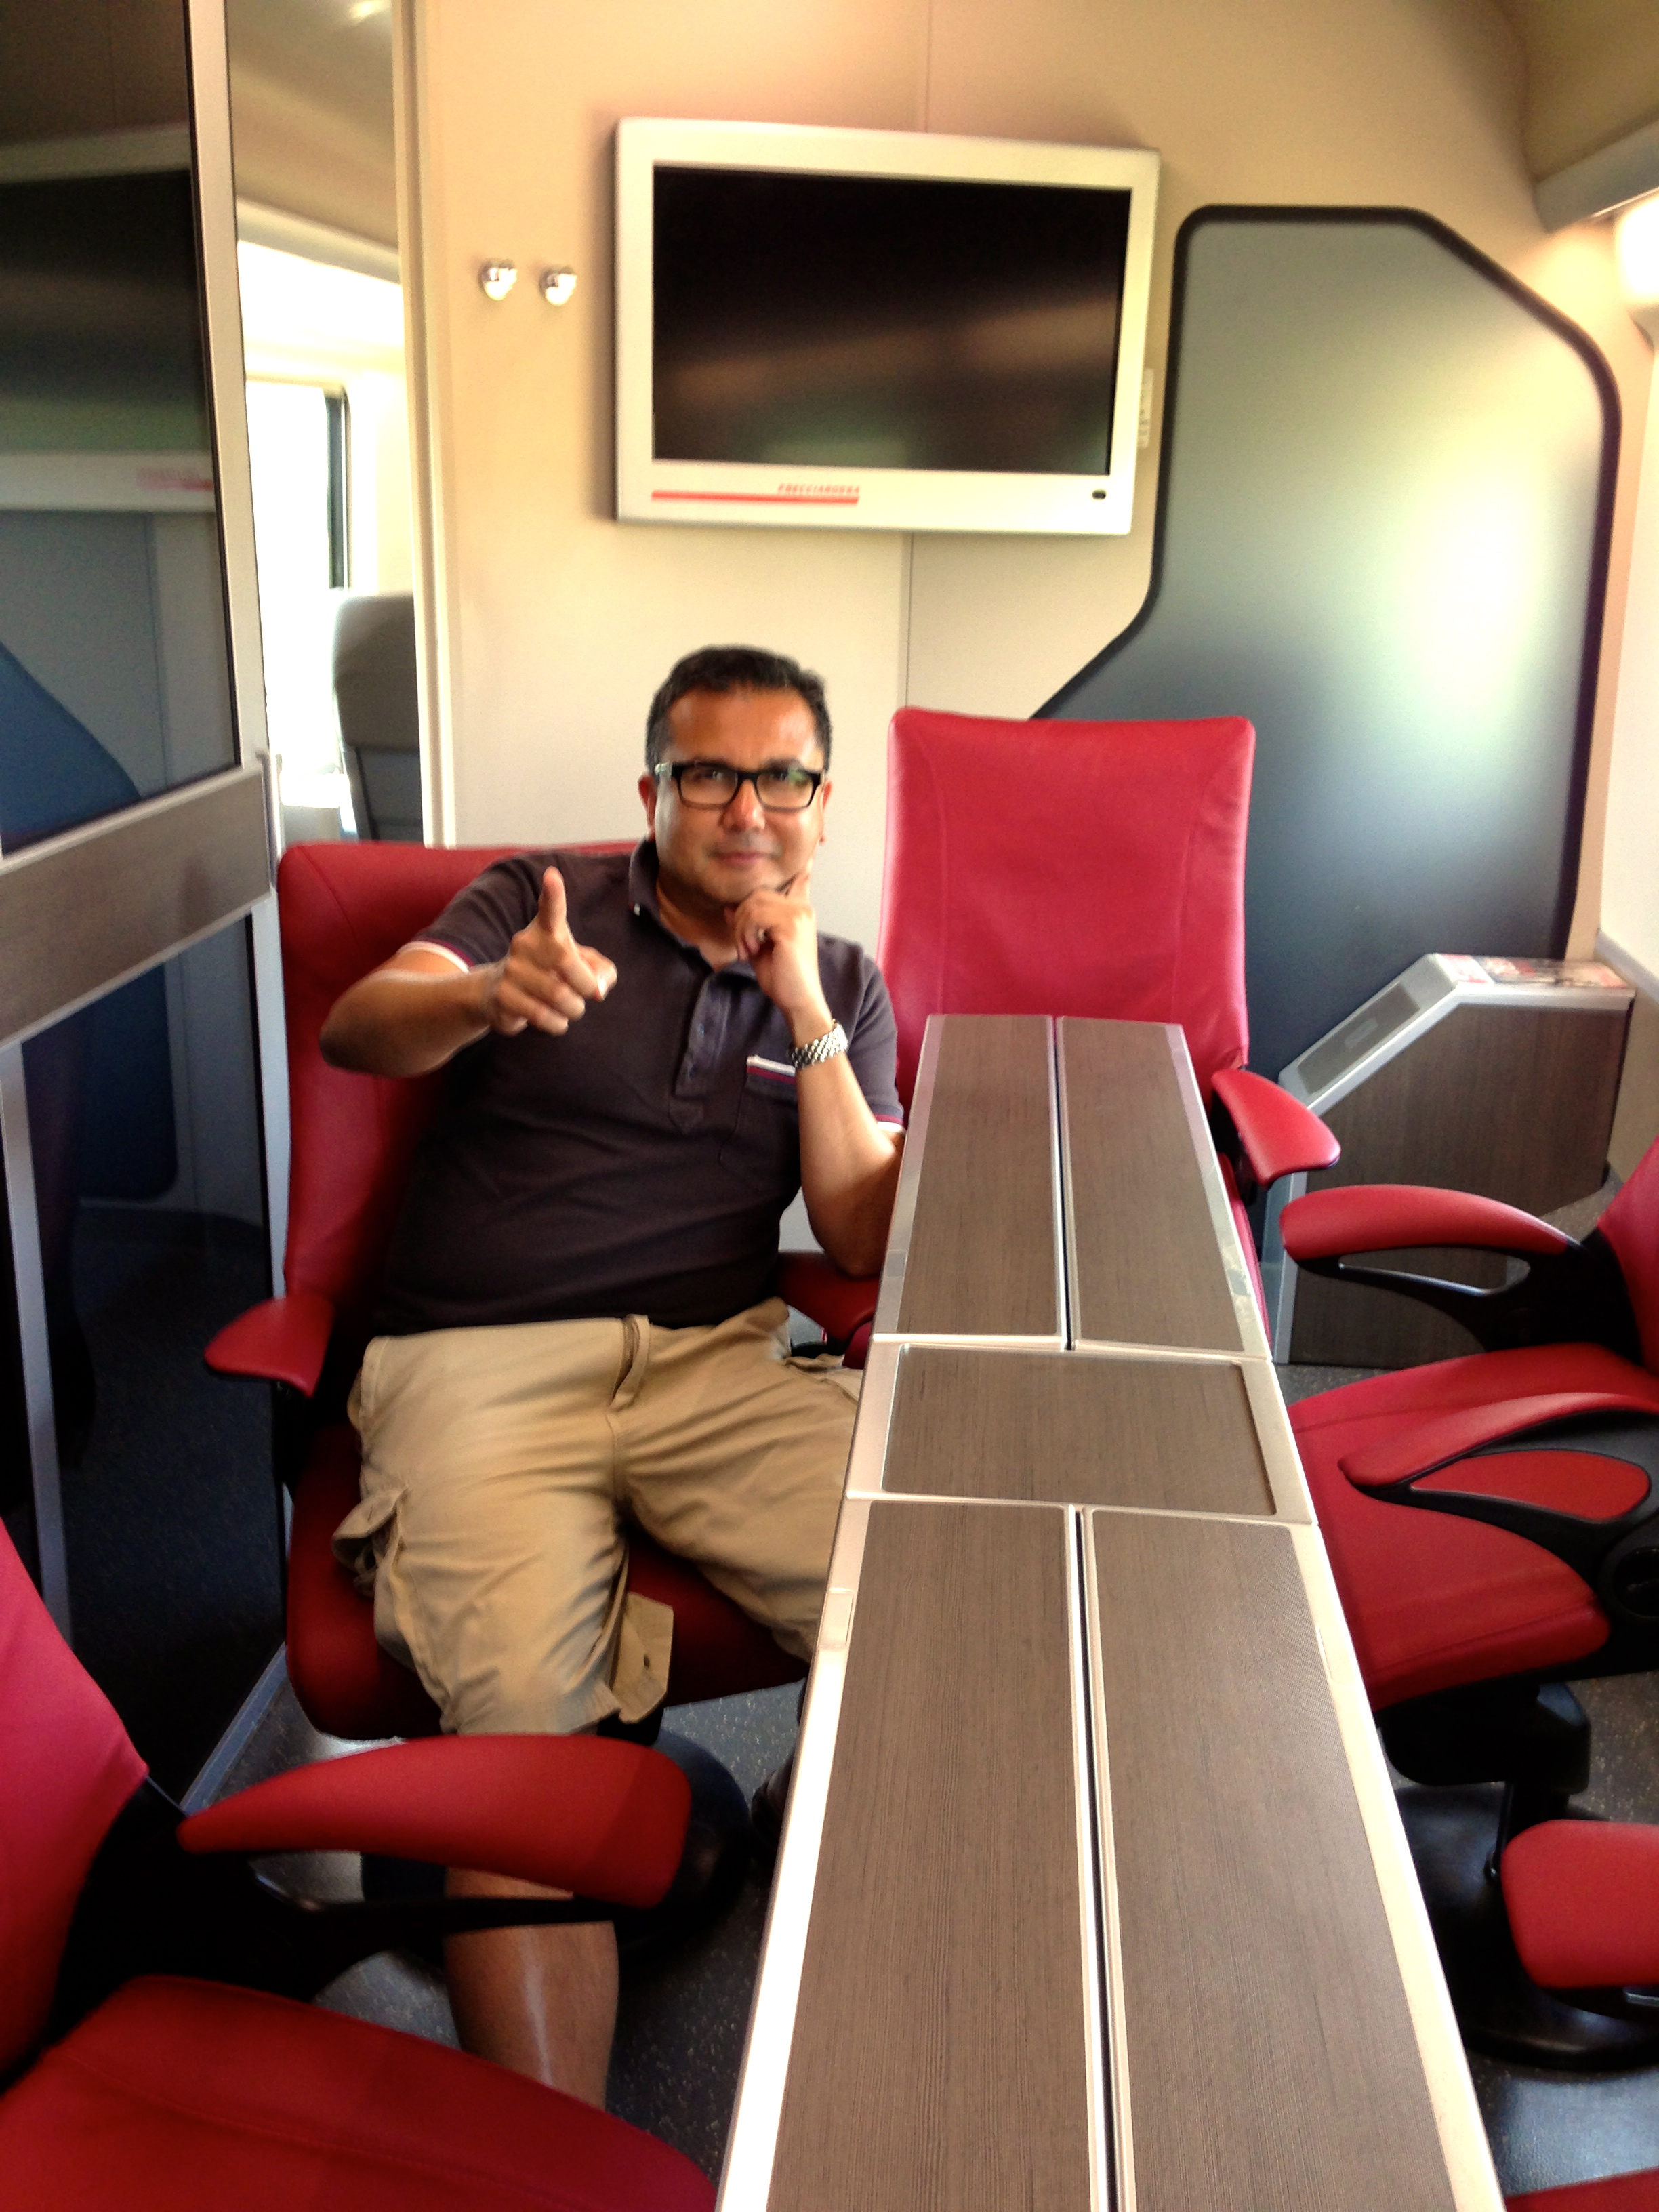 Trenitalia Frecciarossa Executive Class Conference Room